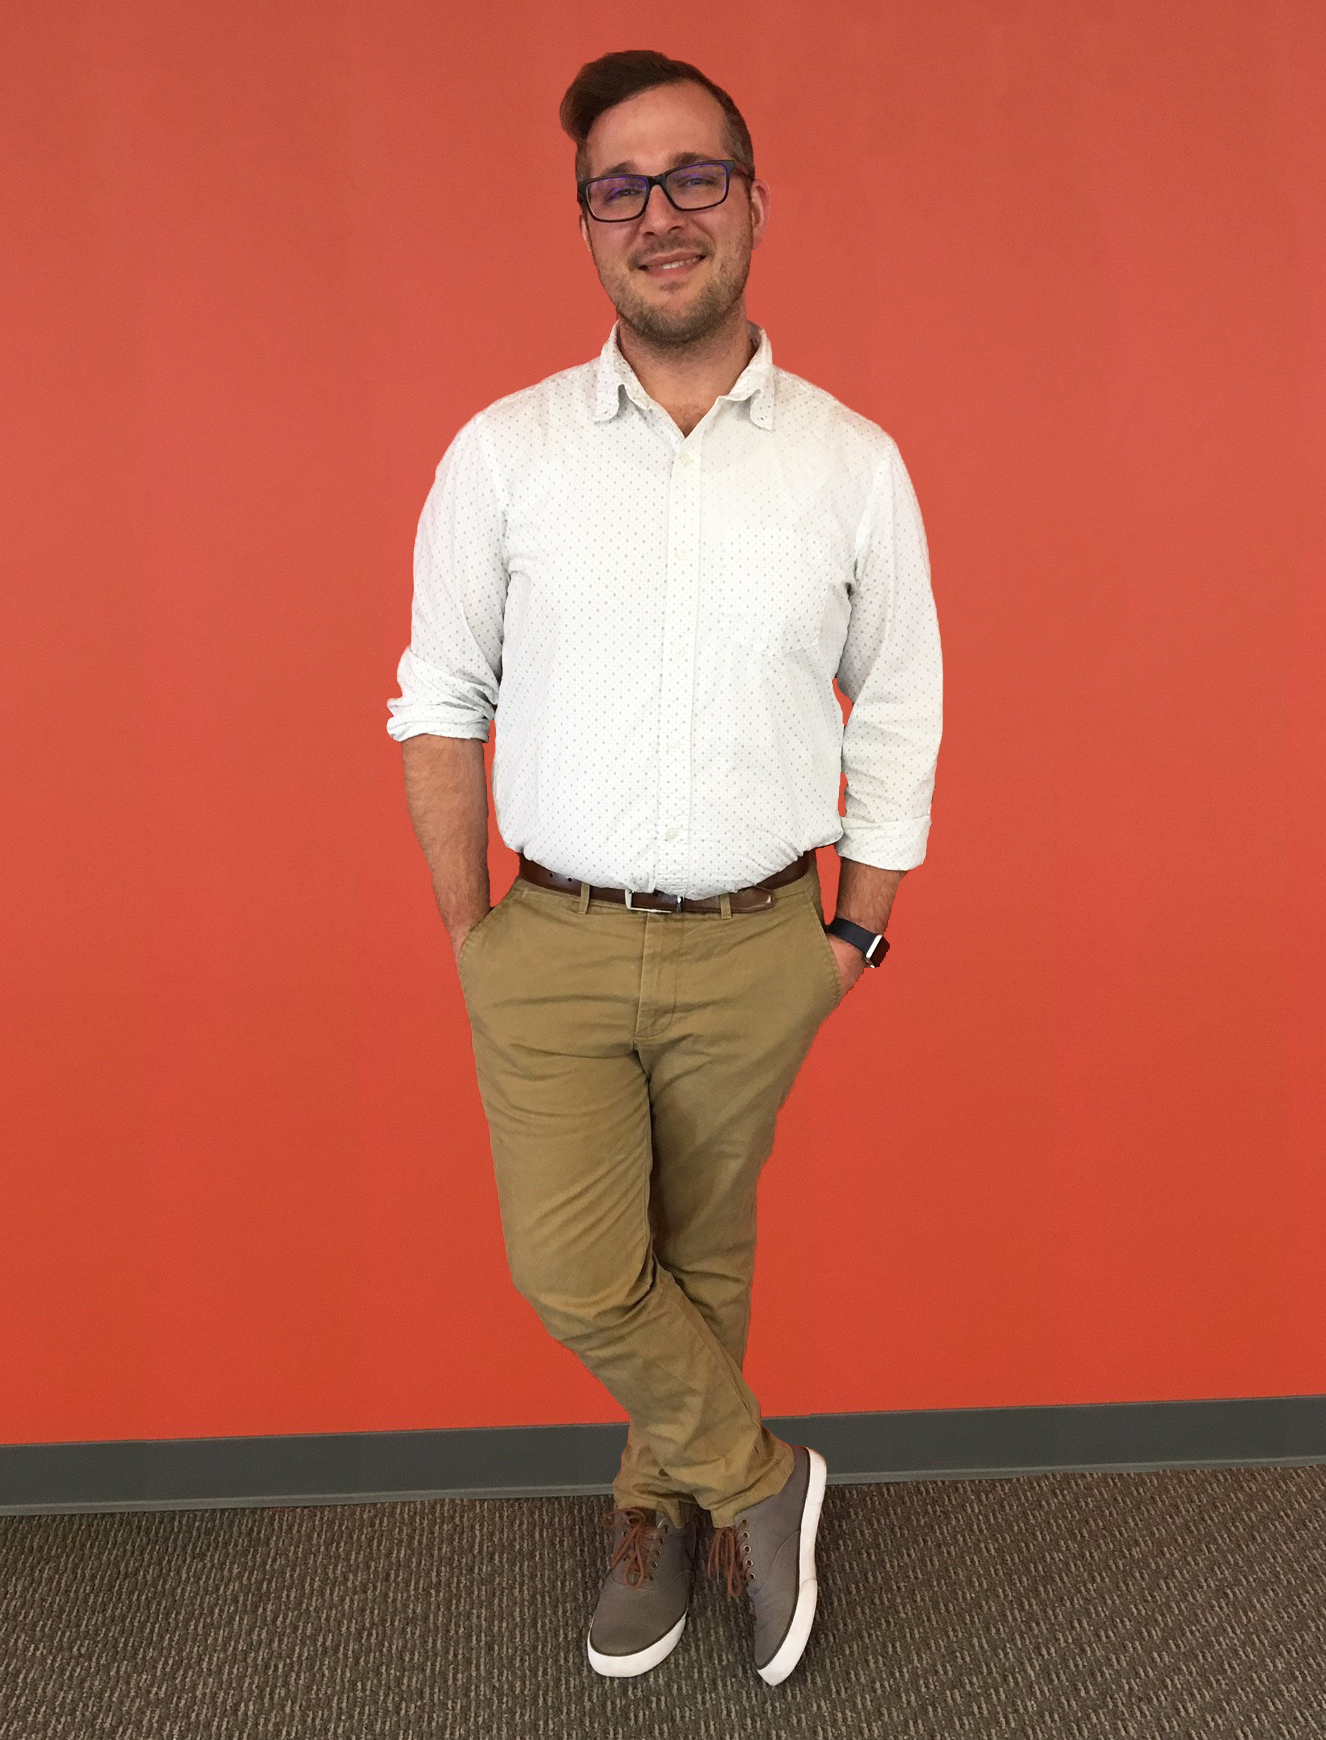 Our Senior Operations Coordinator, Cory, in Summer-Friendly Work Attire